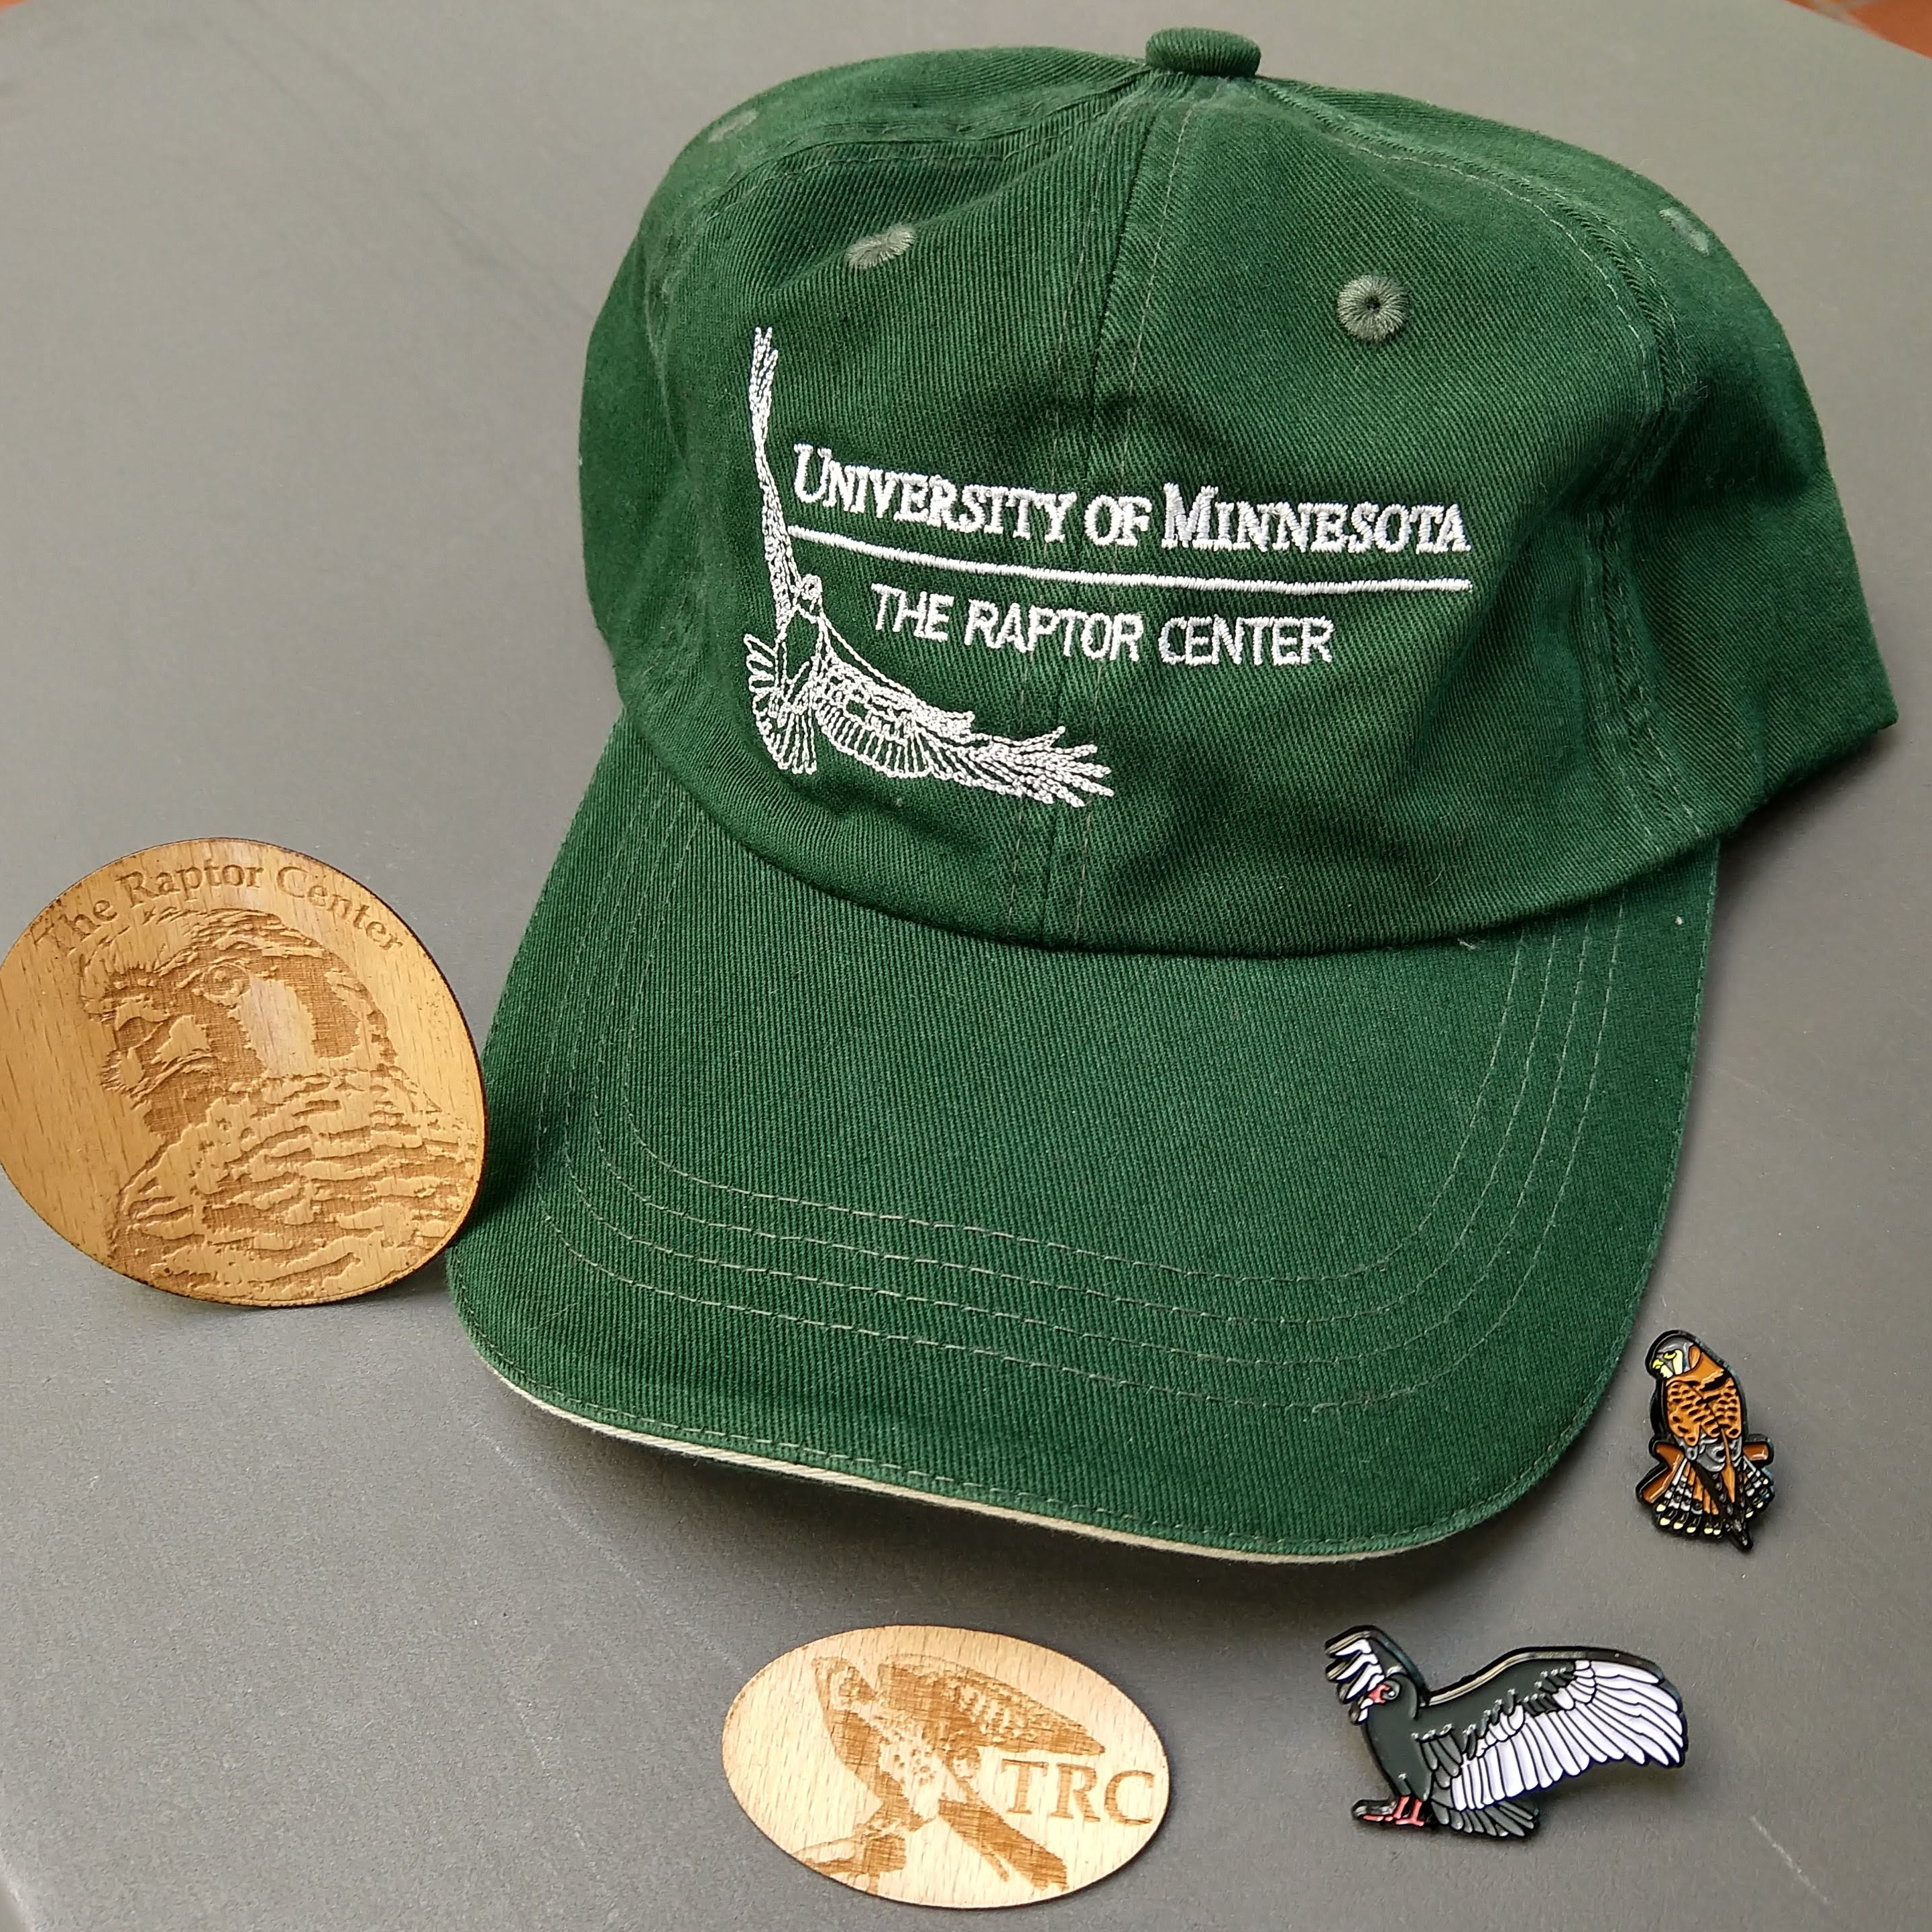 Hat and tokens for shop online link